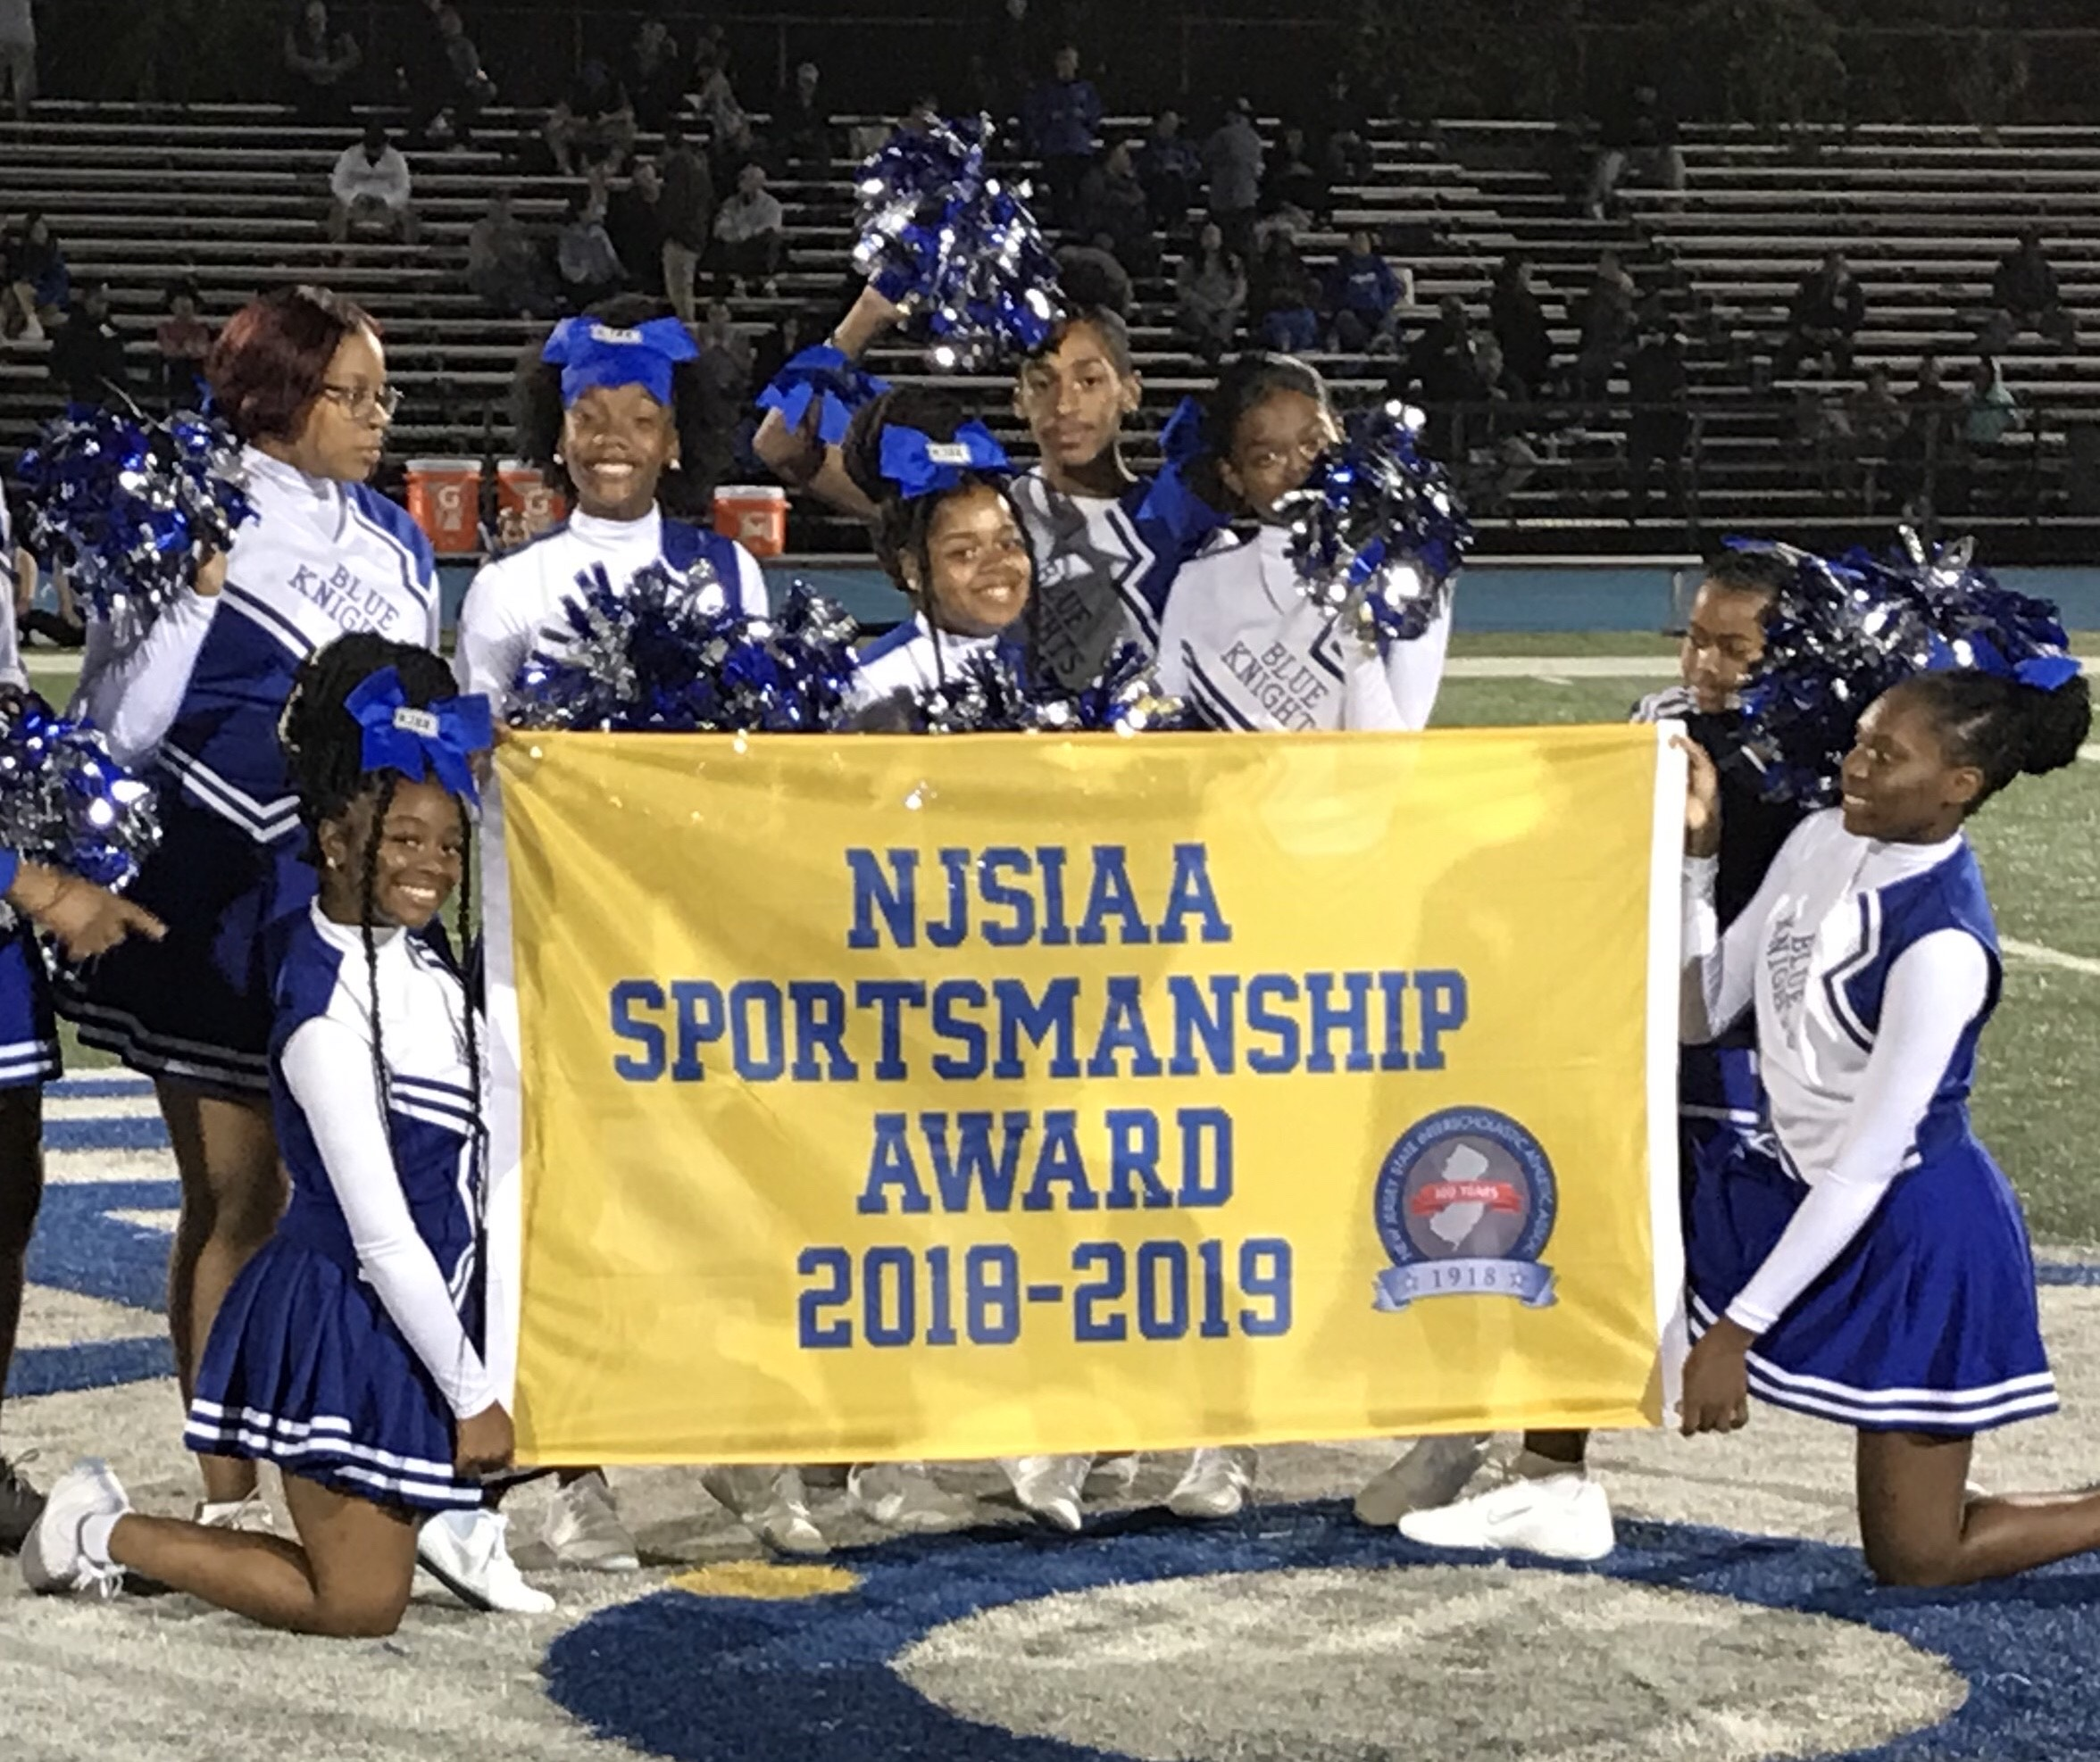 2018 - 2019 NJSIAA Sportsmanship Award for Irvington Blue Knights Football